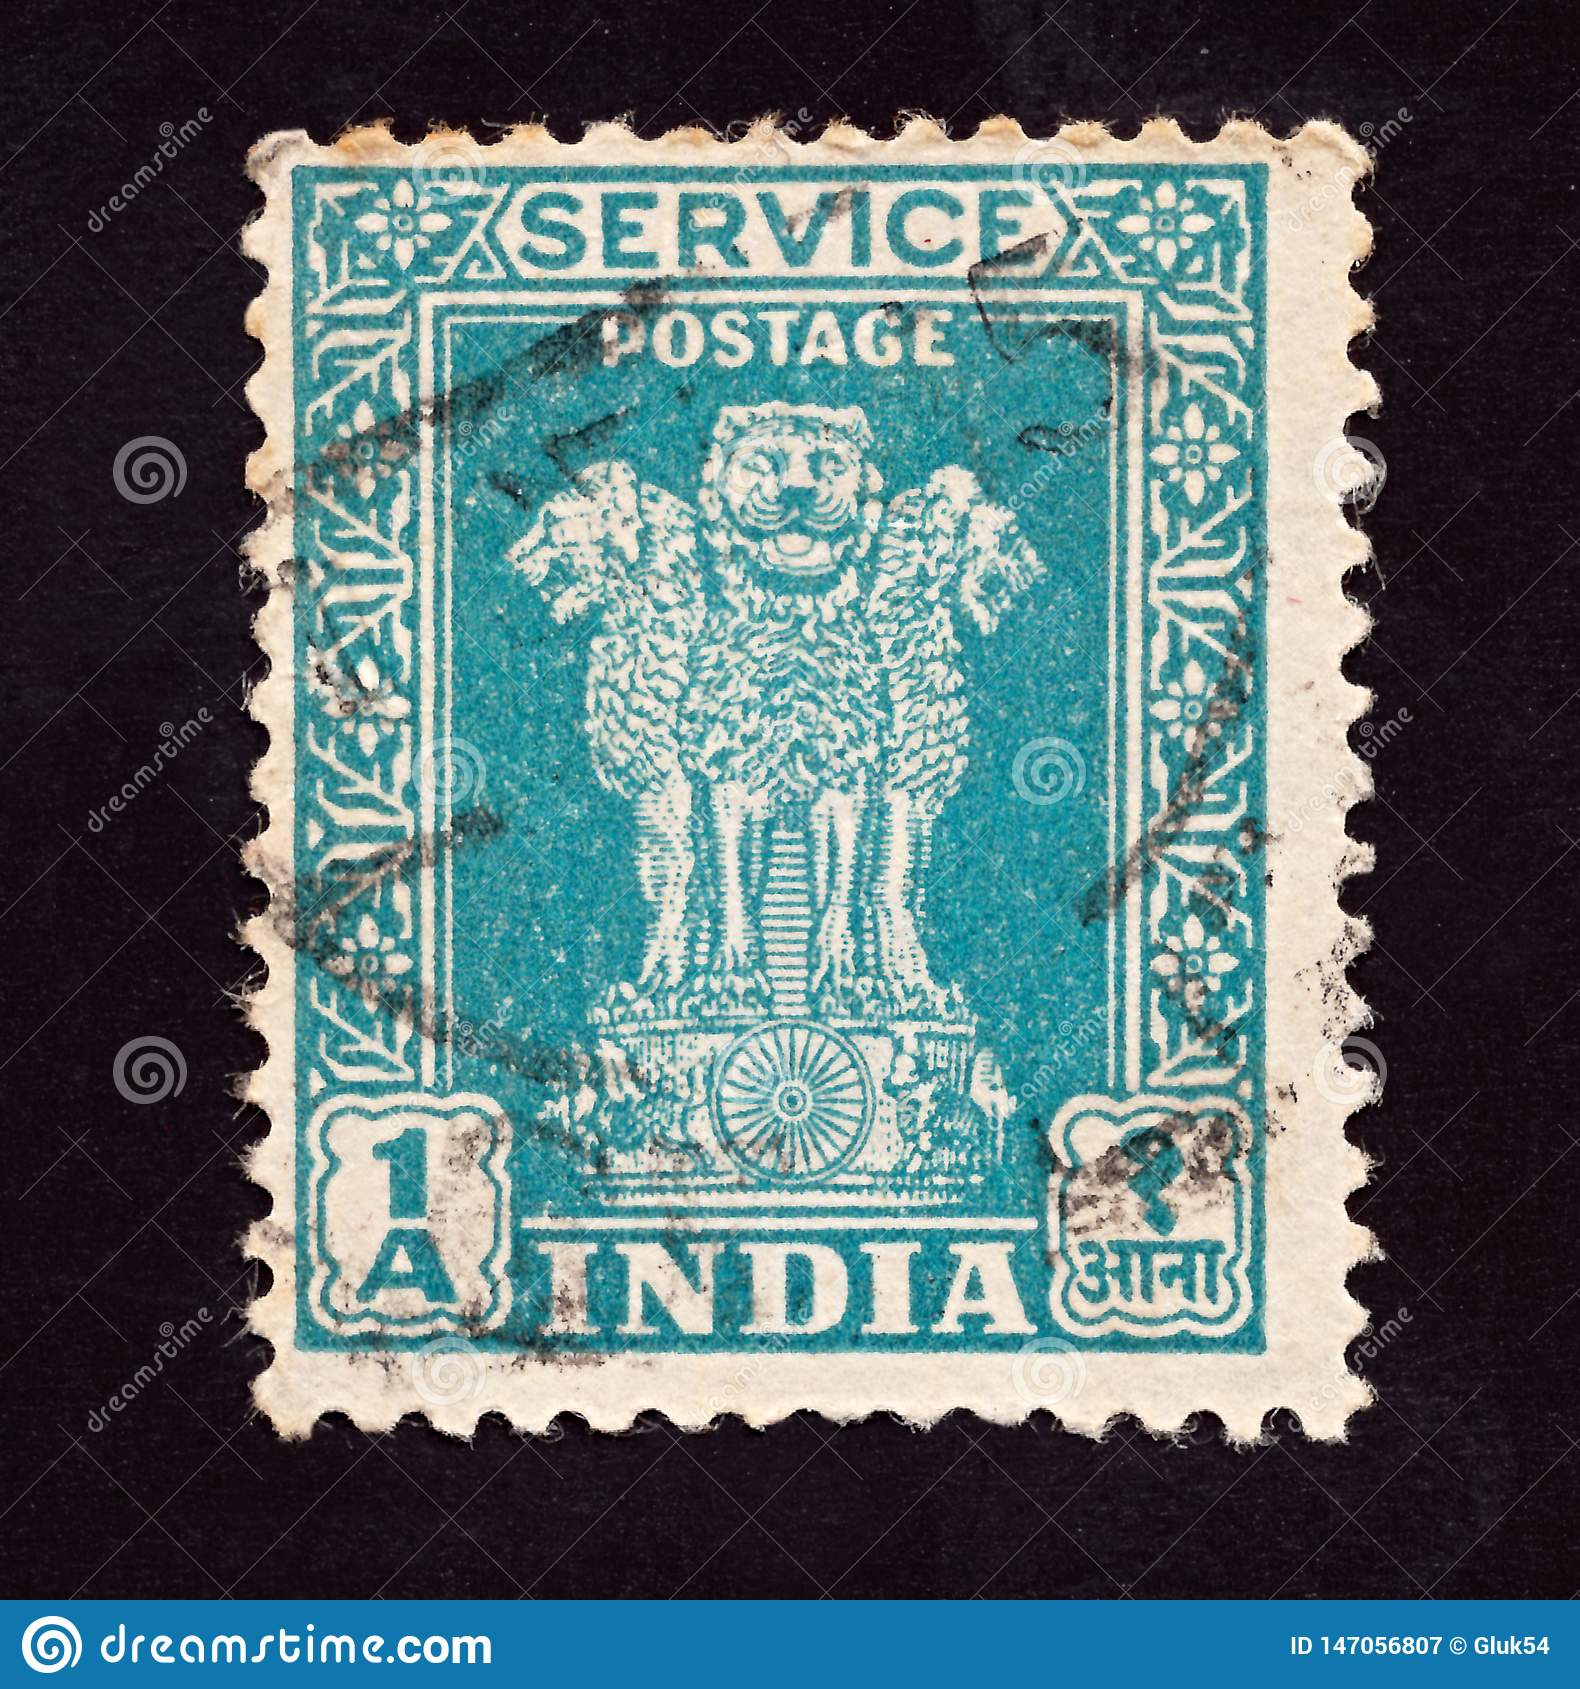 INDIA - CIRCA 1950: Cancelled postage stamp printed by  Indian mind shows four Indian lions capital of Ashoka Pillar, circa 1950